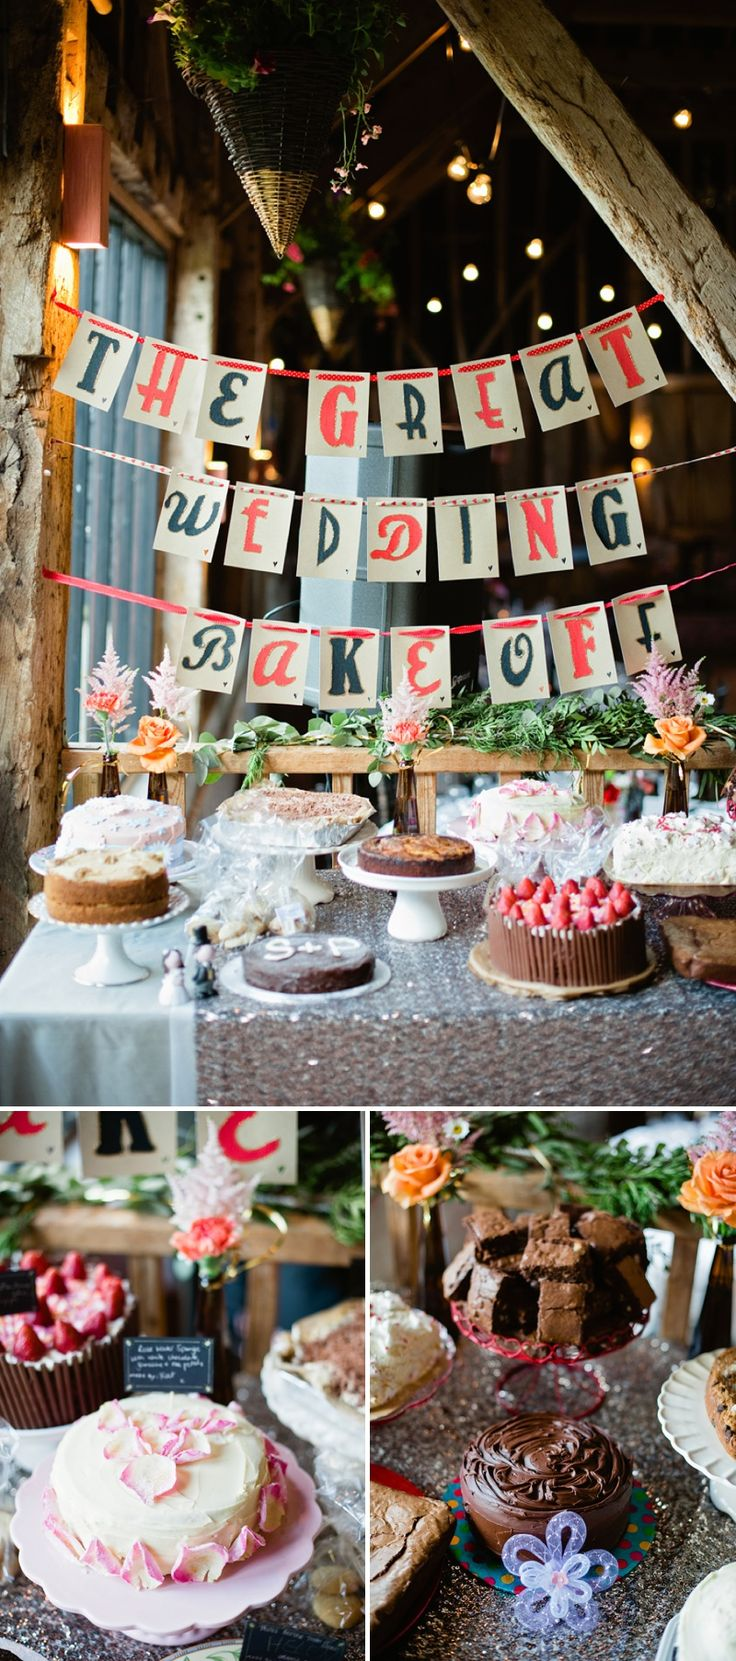 The Great Wedding Bake Off